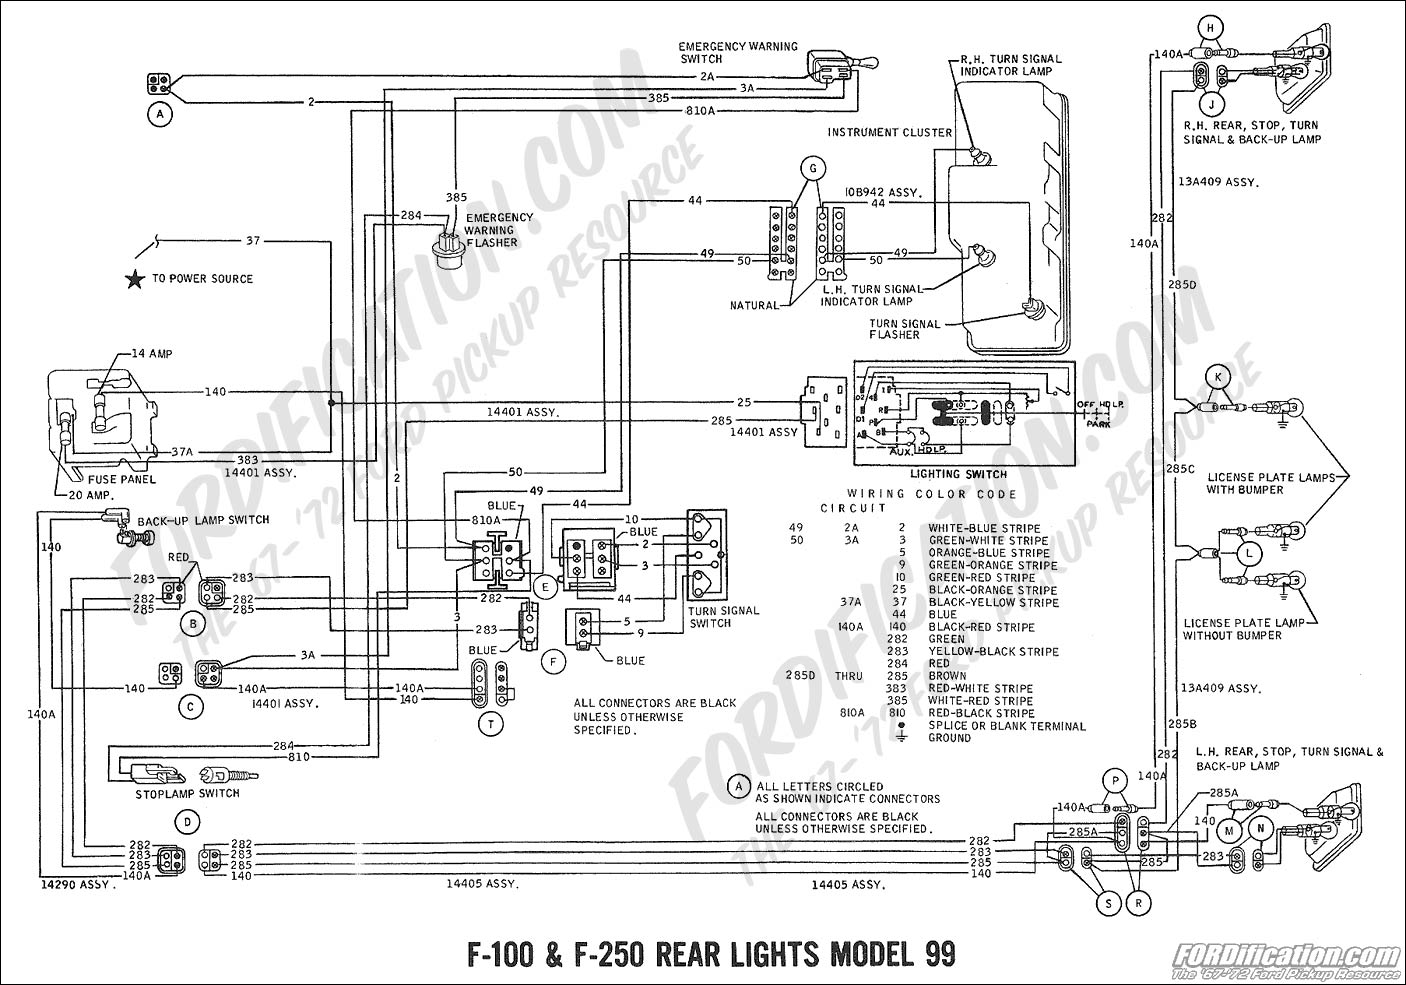 Schematics i also 1552542 Flashers Dont Flash as well 2005 Ford E250 Steering Wiring Diagrams besides 1967 Bronco Wiring Harness furthermore 99 CIVIC WIRING DIAGRAM COURTESY LIGHTS L21935. on turn signal wiring diagram for 1997 ford mustang